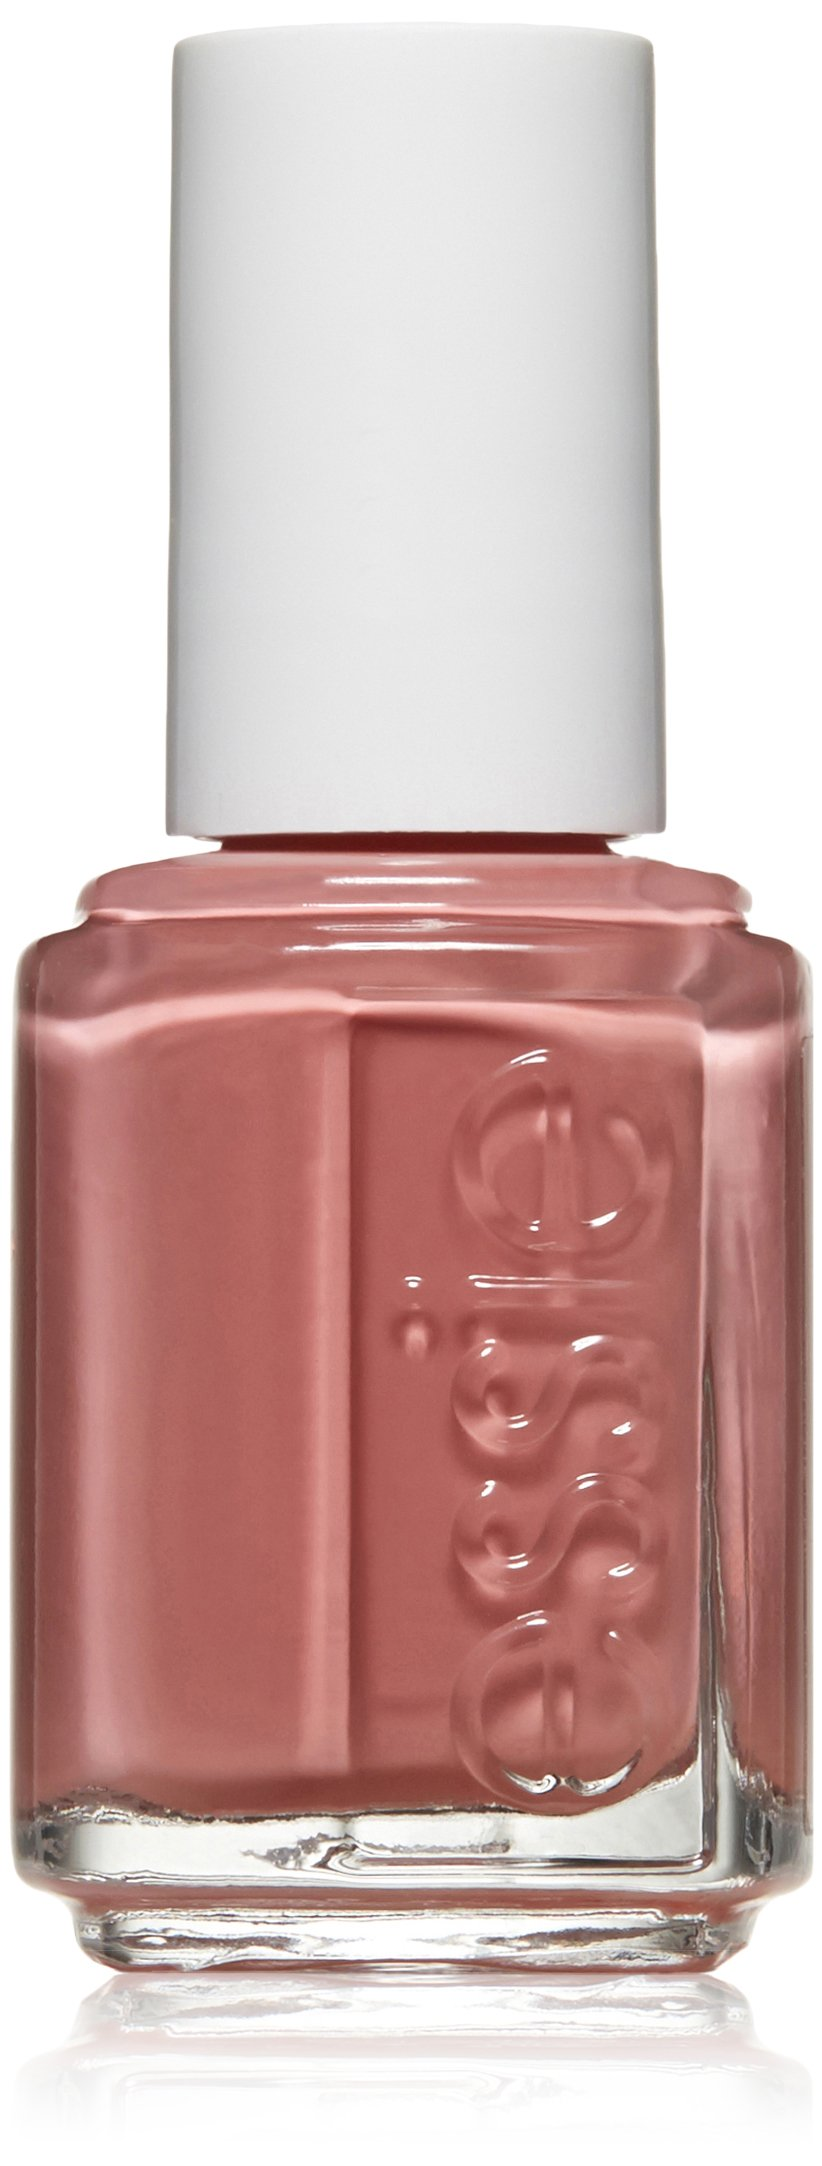 Amazon.com : essie nail polish, in stitches, blush pink